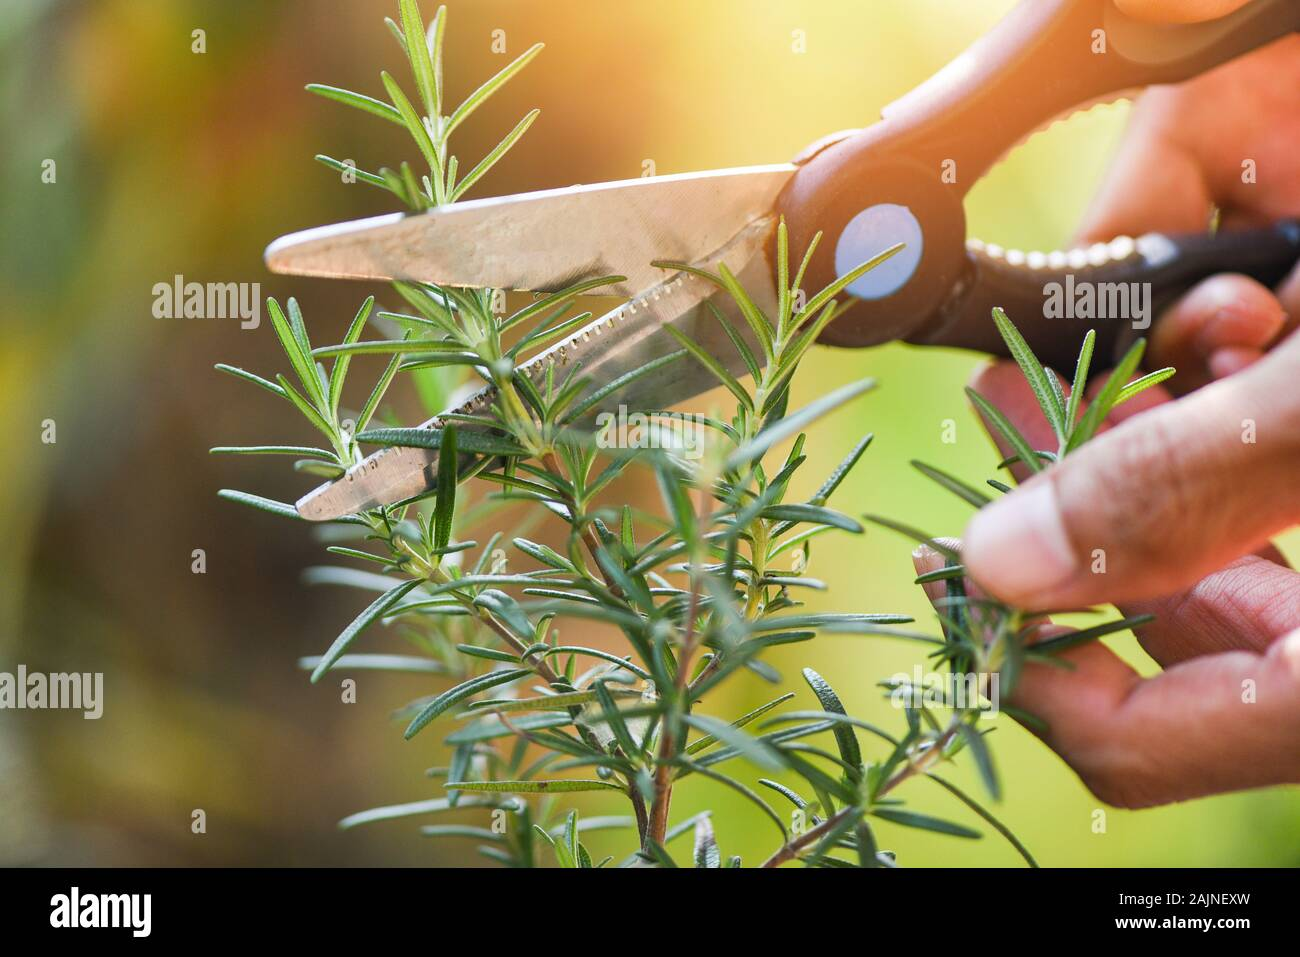 Cut Rosemary Plant Growing In The Garden For Extracts Essential